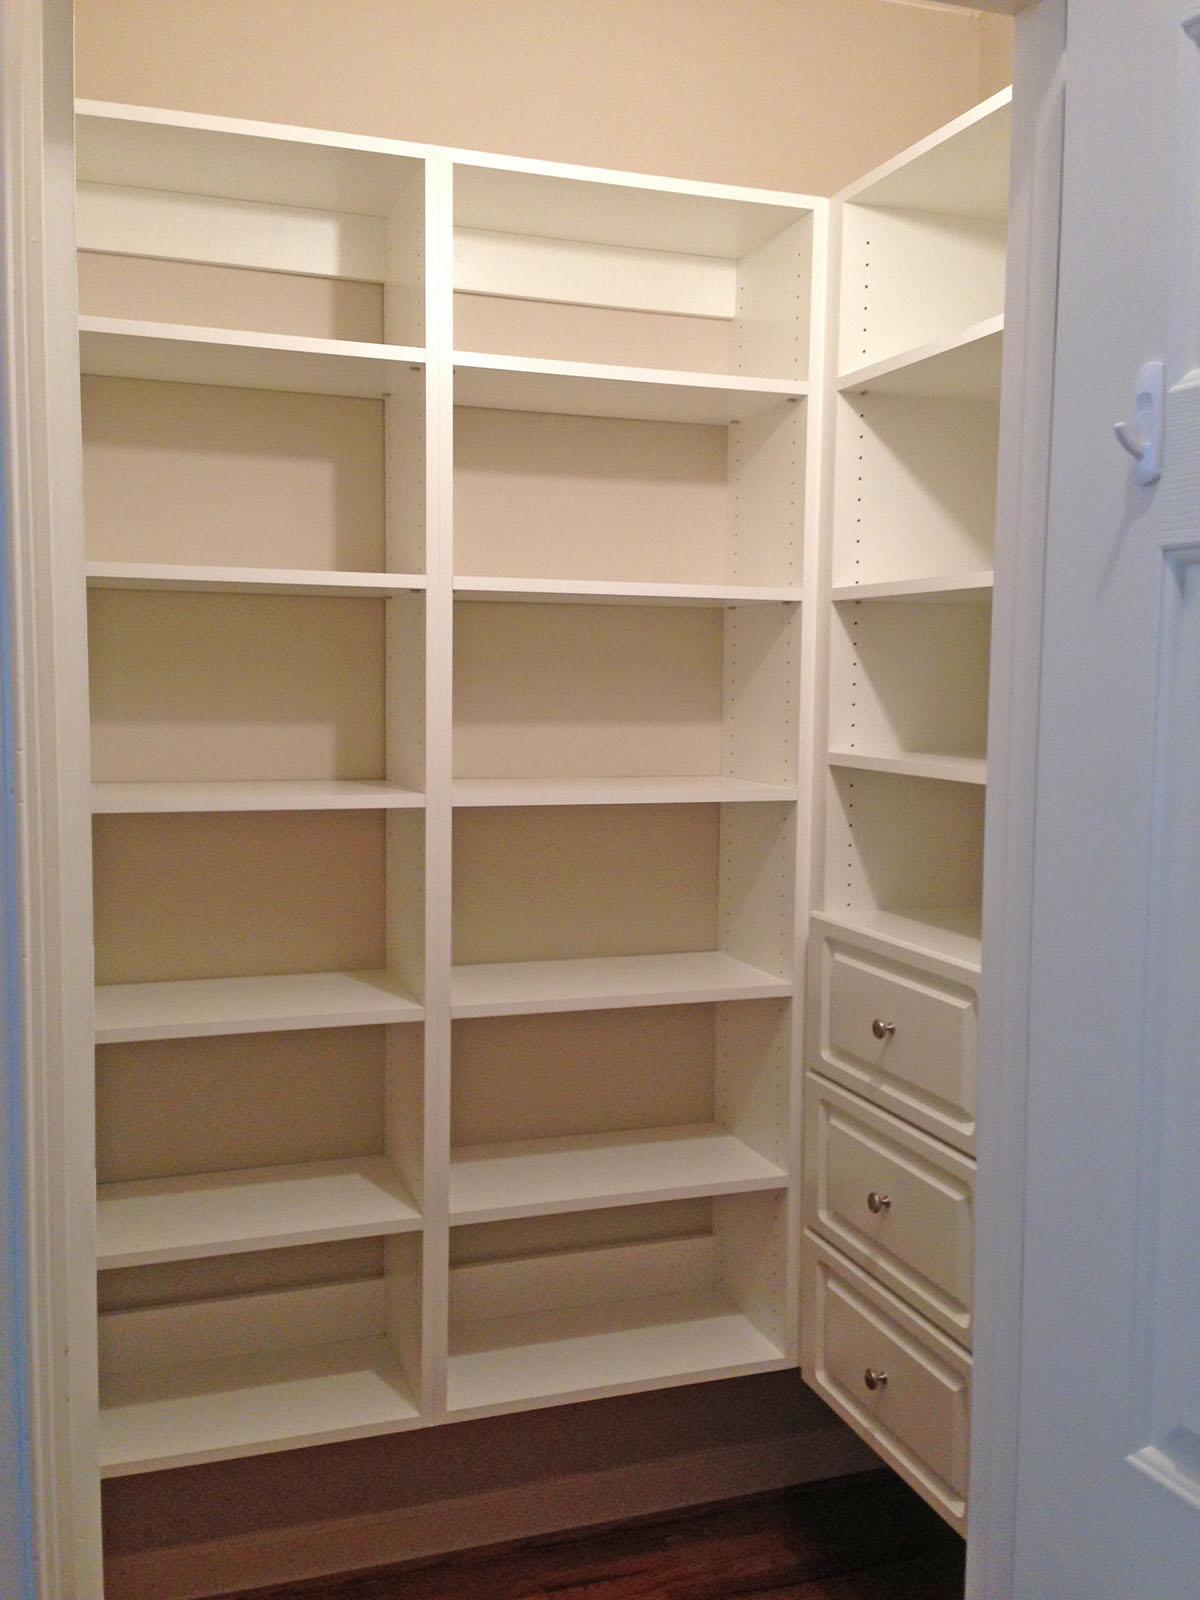 an preppers pantry a inside s storage peek pantries pictures pantrys uncensored gallon survive prepper food